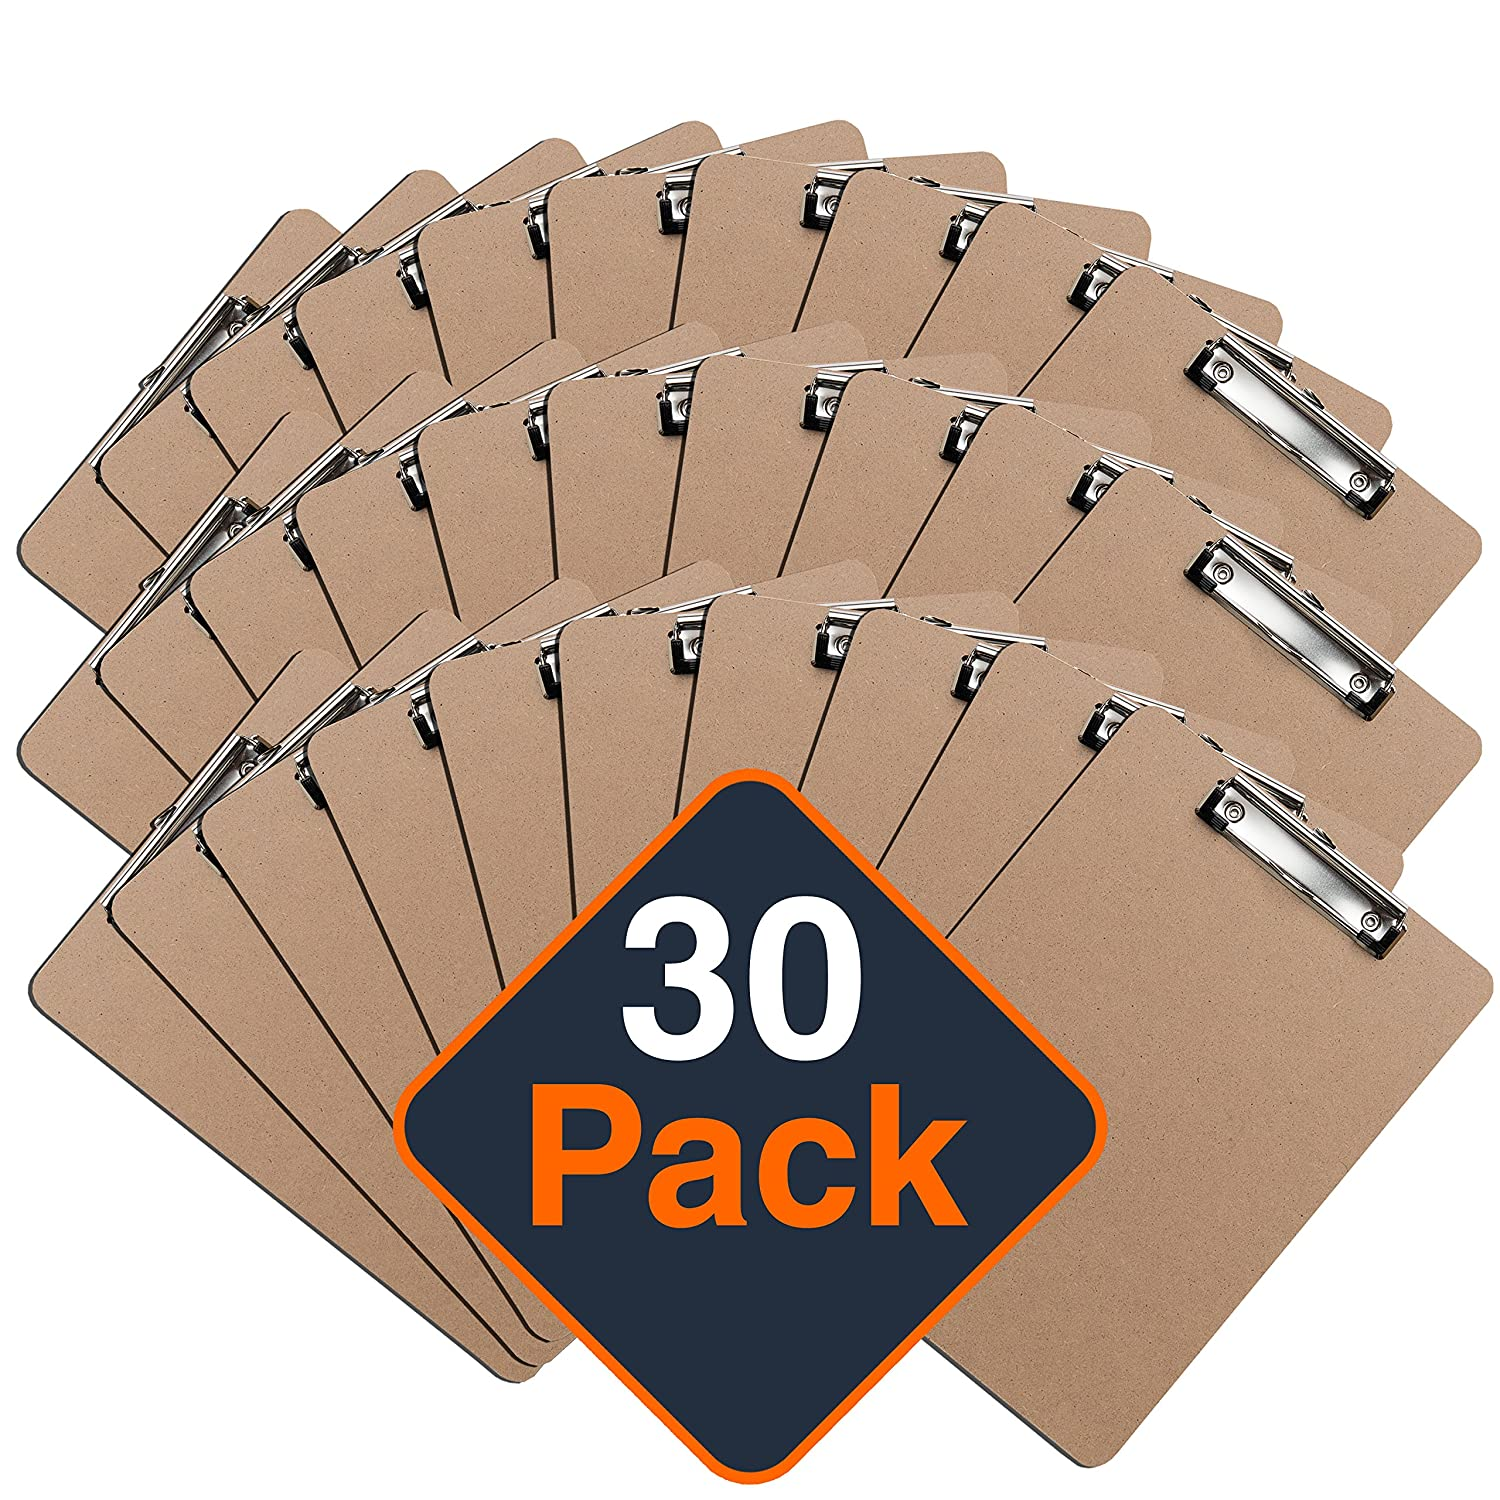 Clipboards (Set of 30) by Office Solutions Direct! ECO FRIENDLY Hardboard Clipboard Pack, Low Profile Clip Standard A4 Letter Size, Classroom Supplies